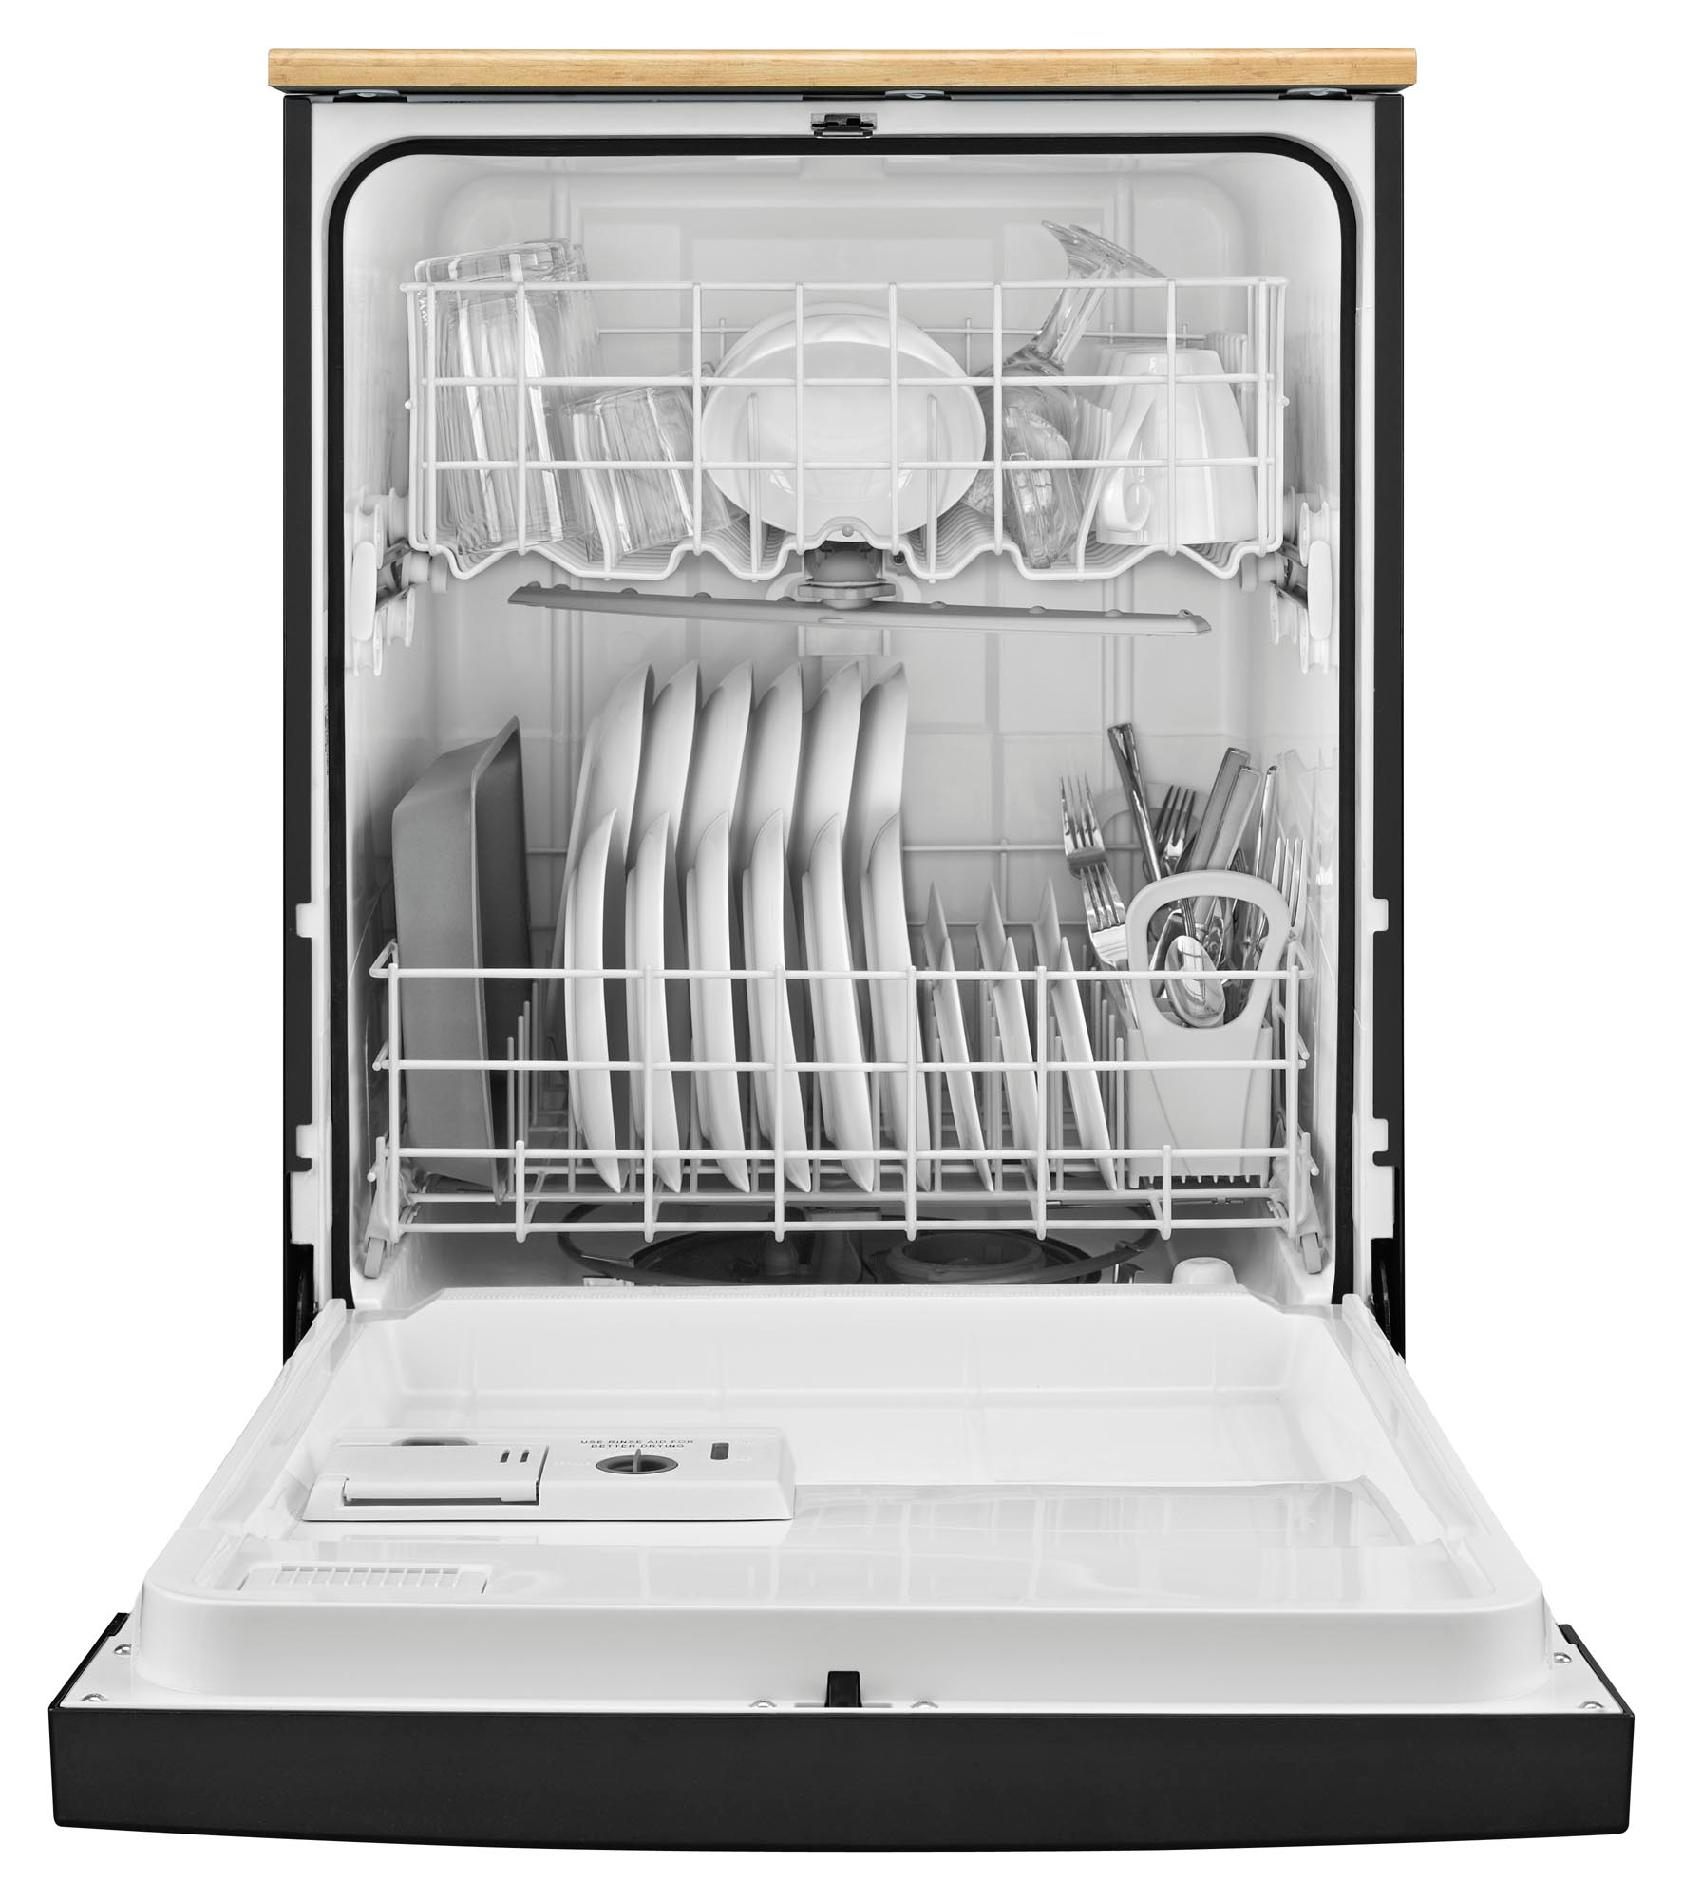 "Whirlpool 24"" Portable Dishwasher w/ 1-Hour Wash - Black"